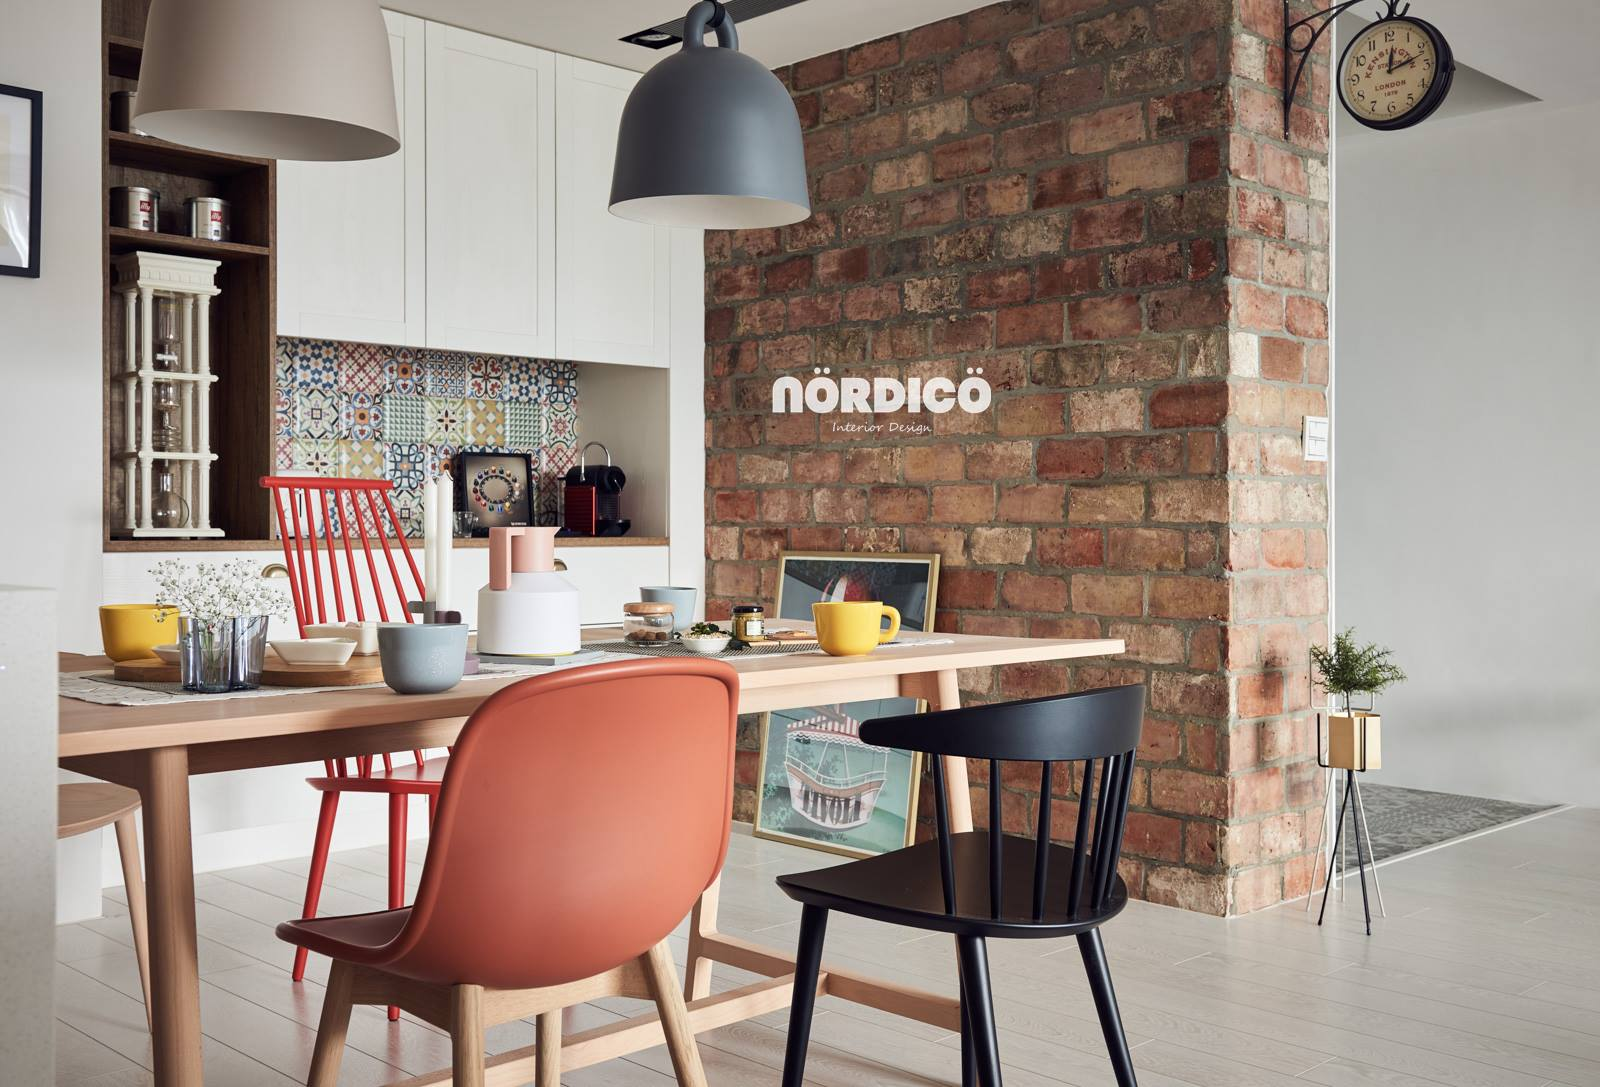 Mismatched Dining Chairs By Nordic Designers - Nordic decor inspiration in two colorful homes